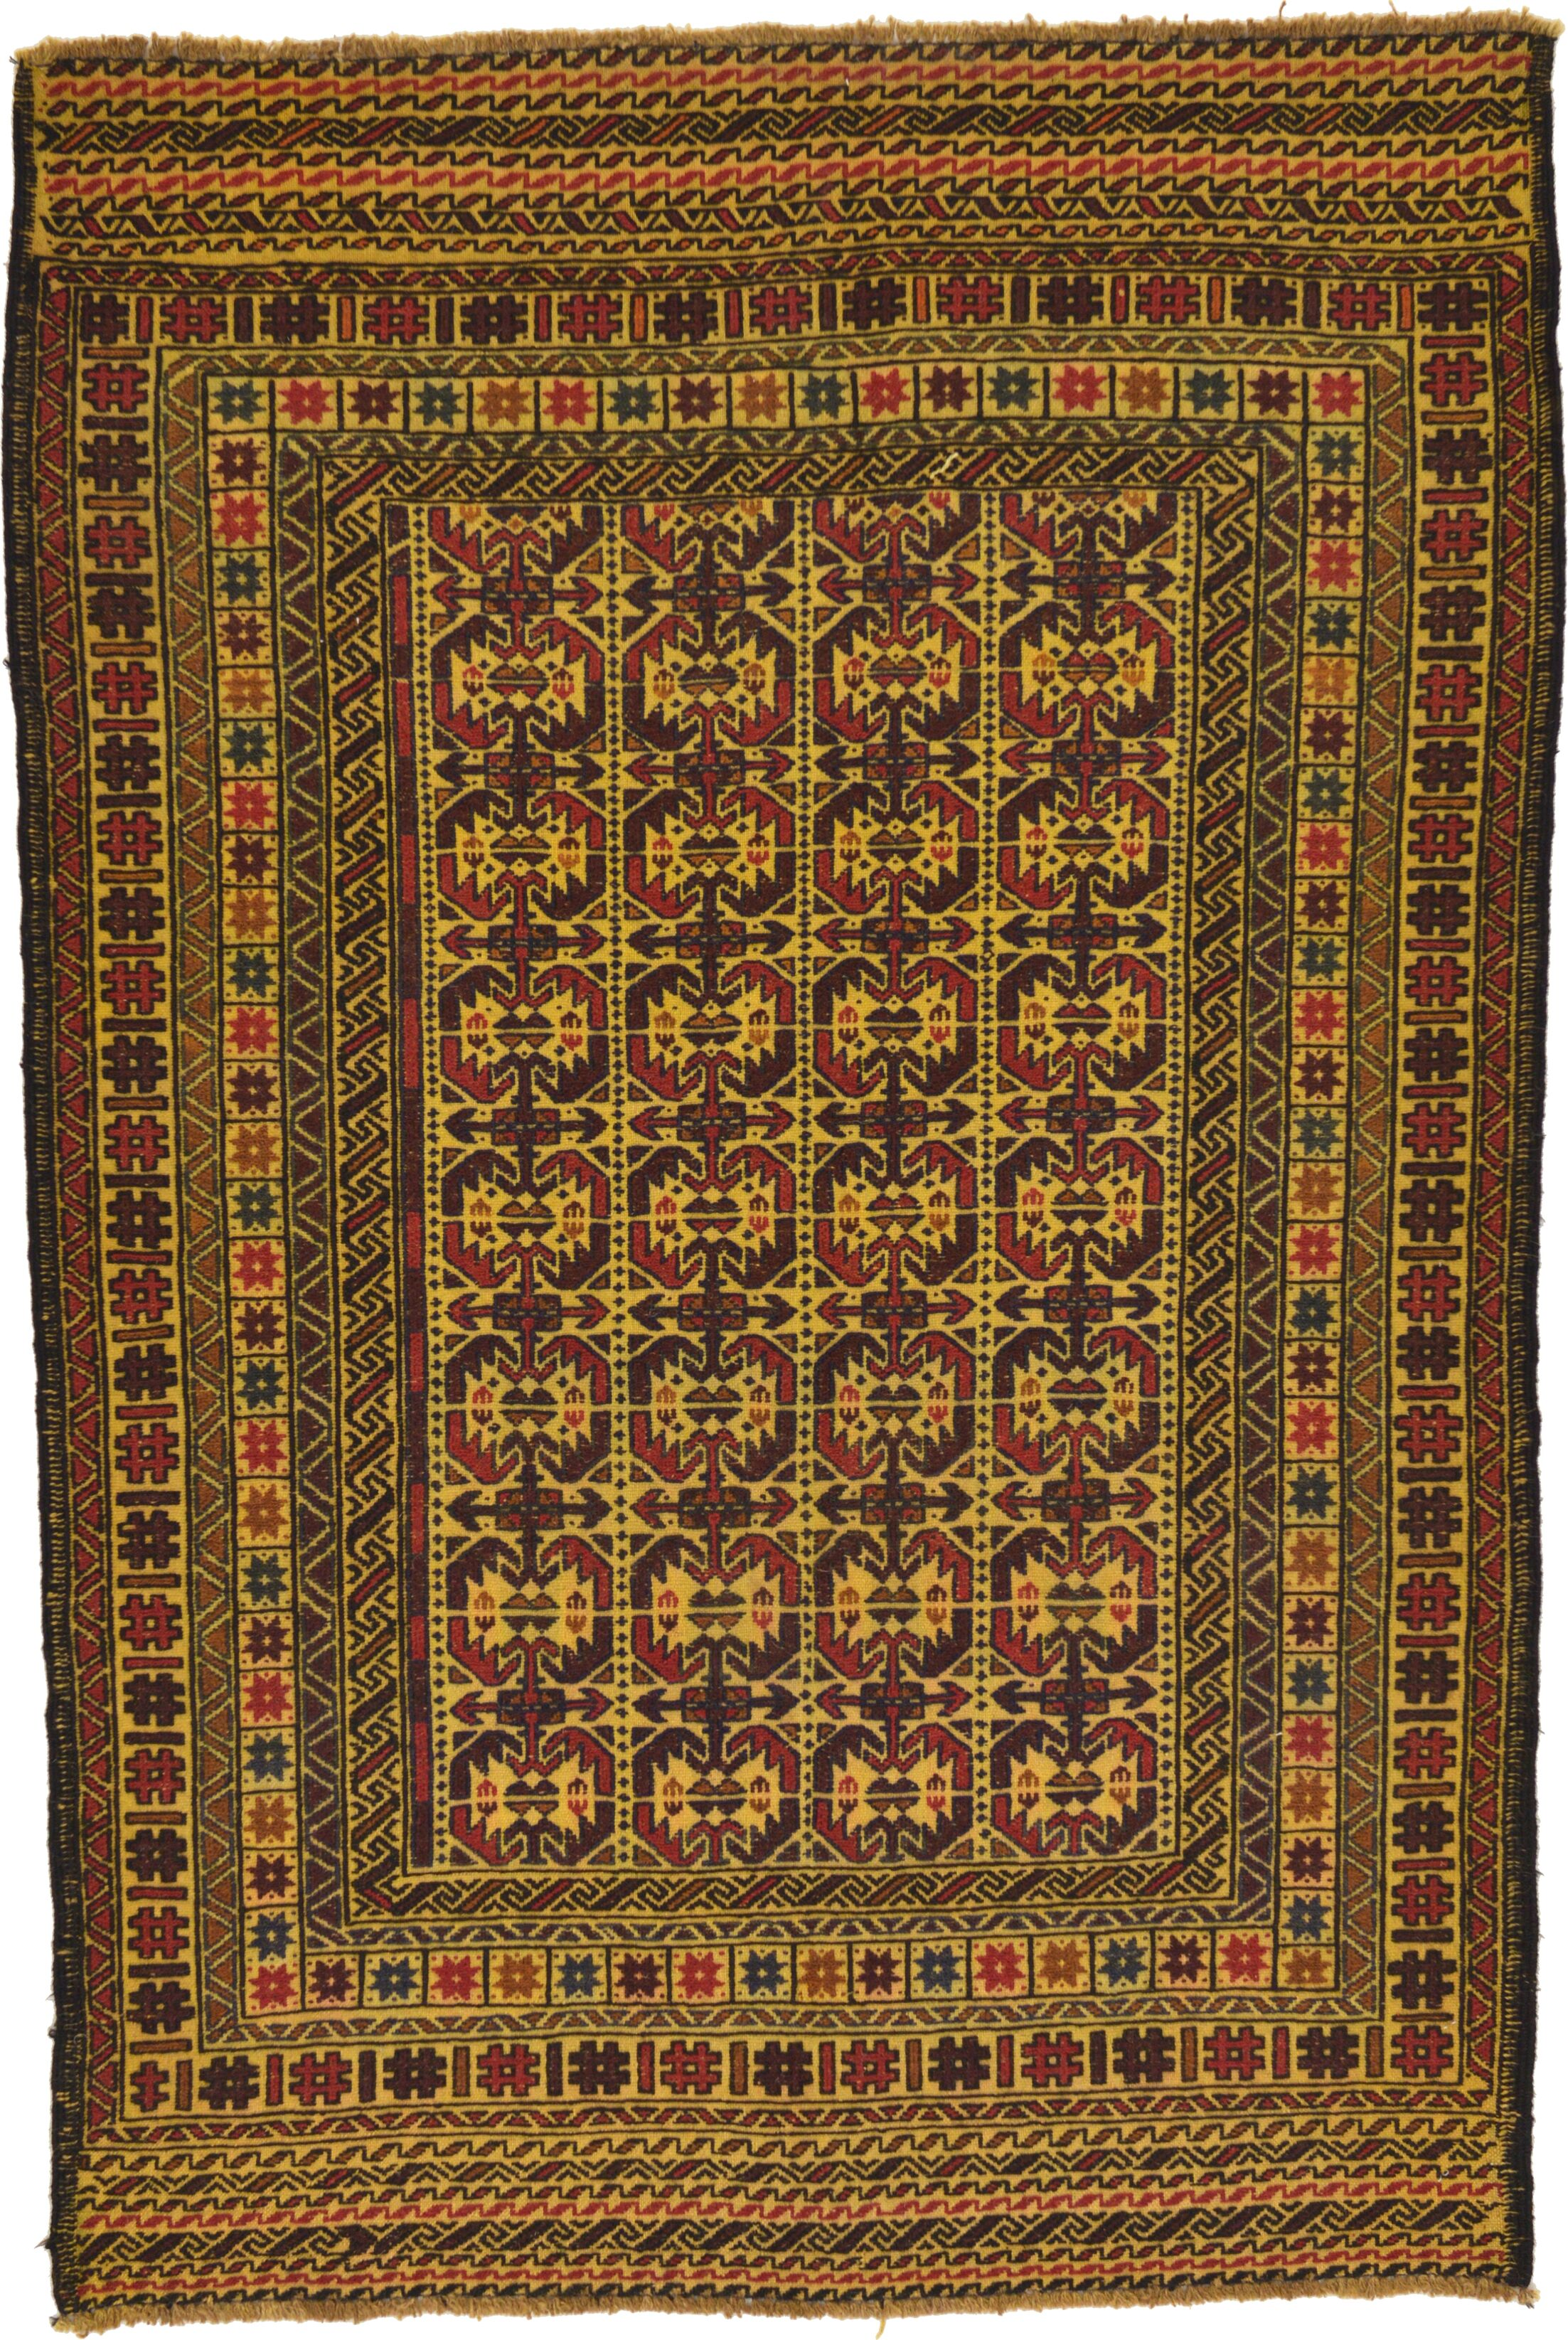 One-of-a-Kind Warminster Hand-Knotted 4' x 6' Wool Gold/Red/Black Area Rug